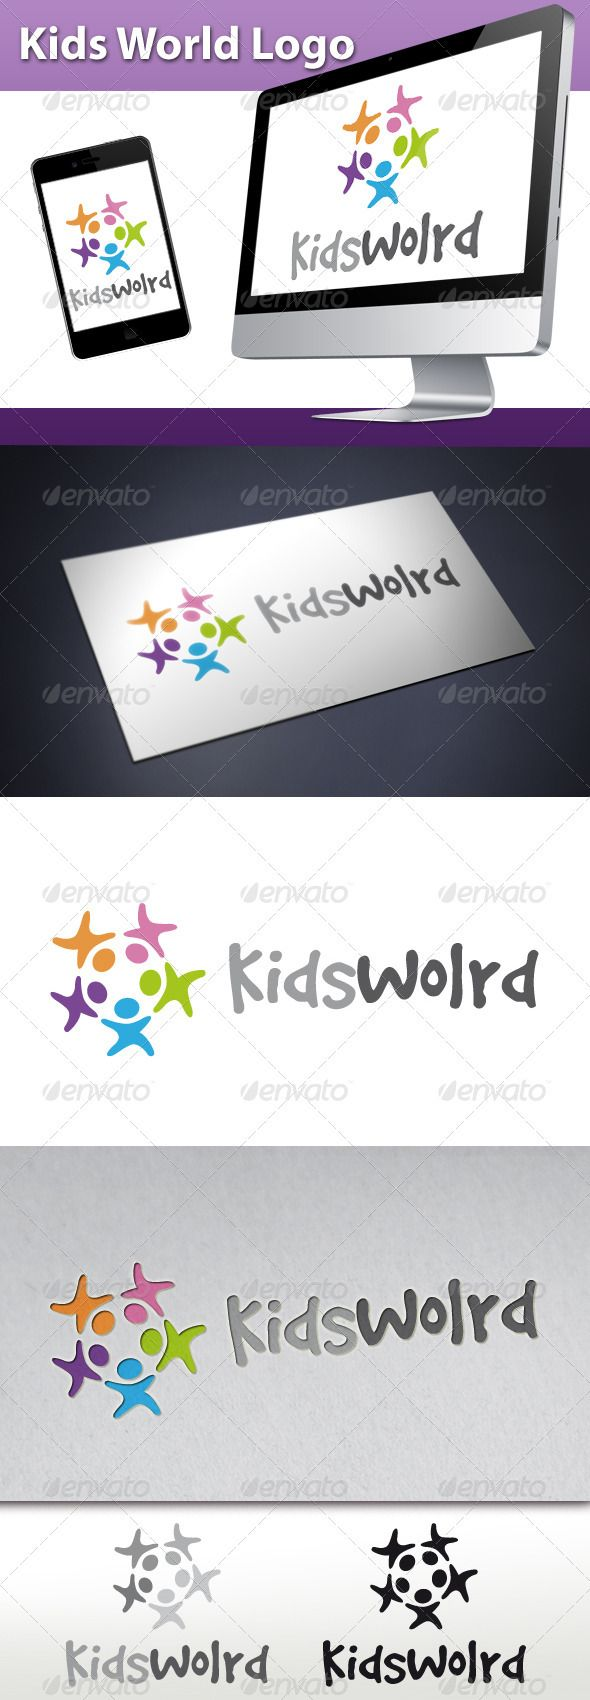 Kids World Logo  #GraphicRiver         - Three color version: Color, greyscale and single color.  - The logo is 100% resizable.   - You can change text and colors very easy using the named and organized layers that includes the file.   - The typography used is GoodDog you can download here:  .fontsquirrel /fonts/GoodDog       Created: 23October12 GraphicsFilesIncluded: VectorEPS #AIIllustrator Layered: Yes MinimumAdobeCSVersion: CS Resolution: Resizable Tags